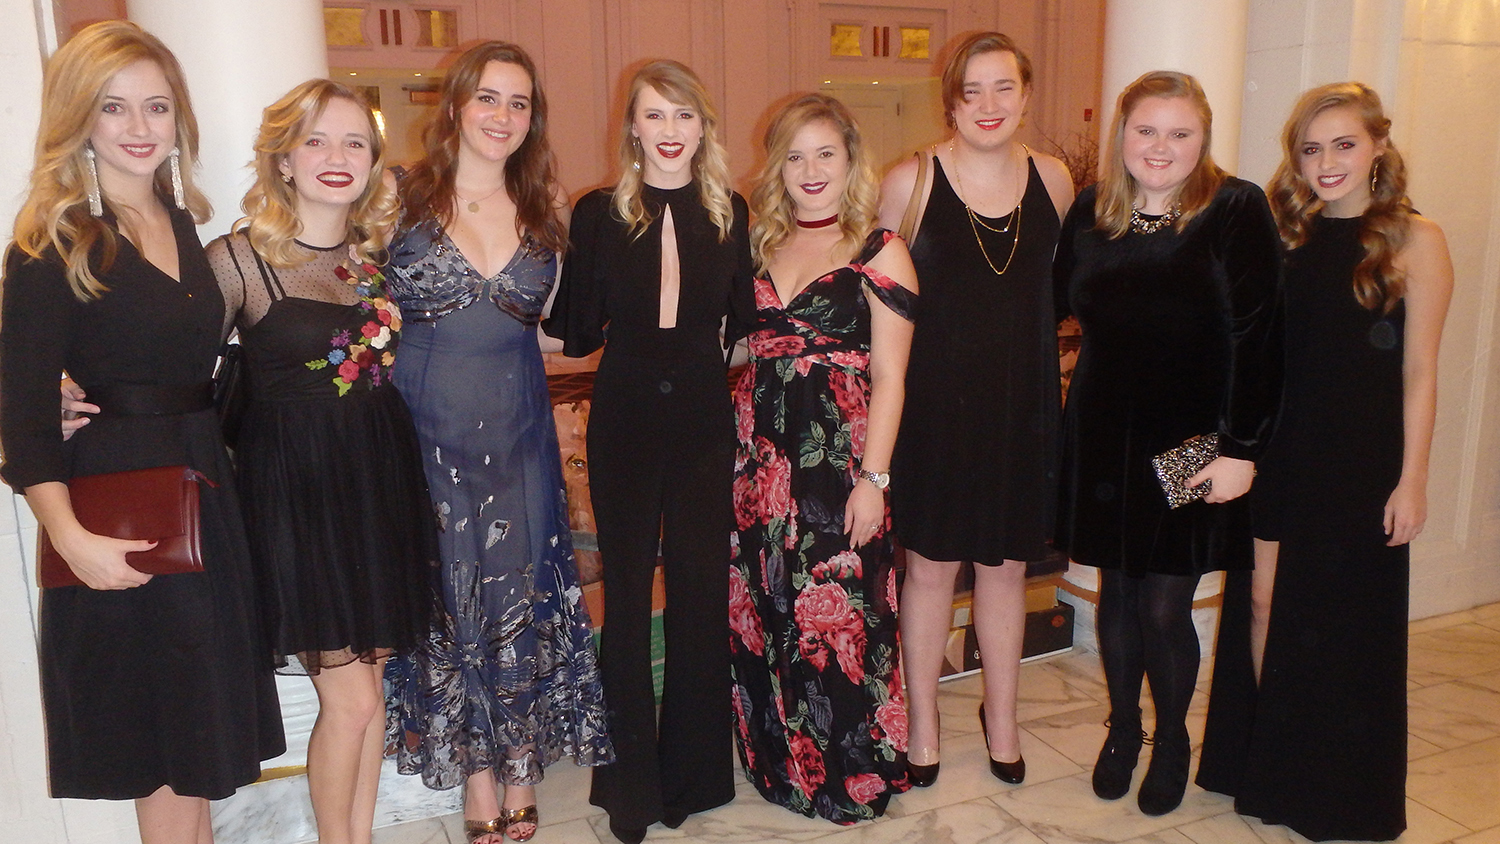 YMA winners at the gala in NYC